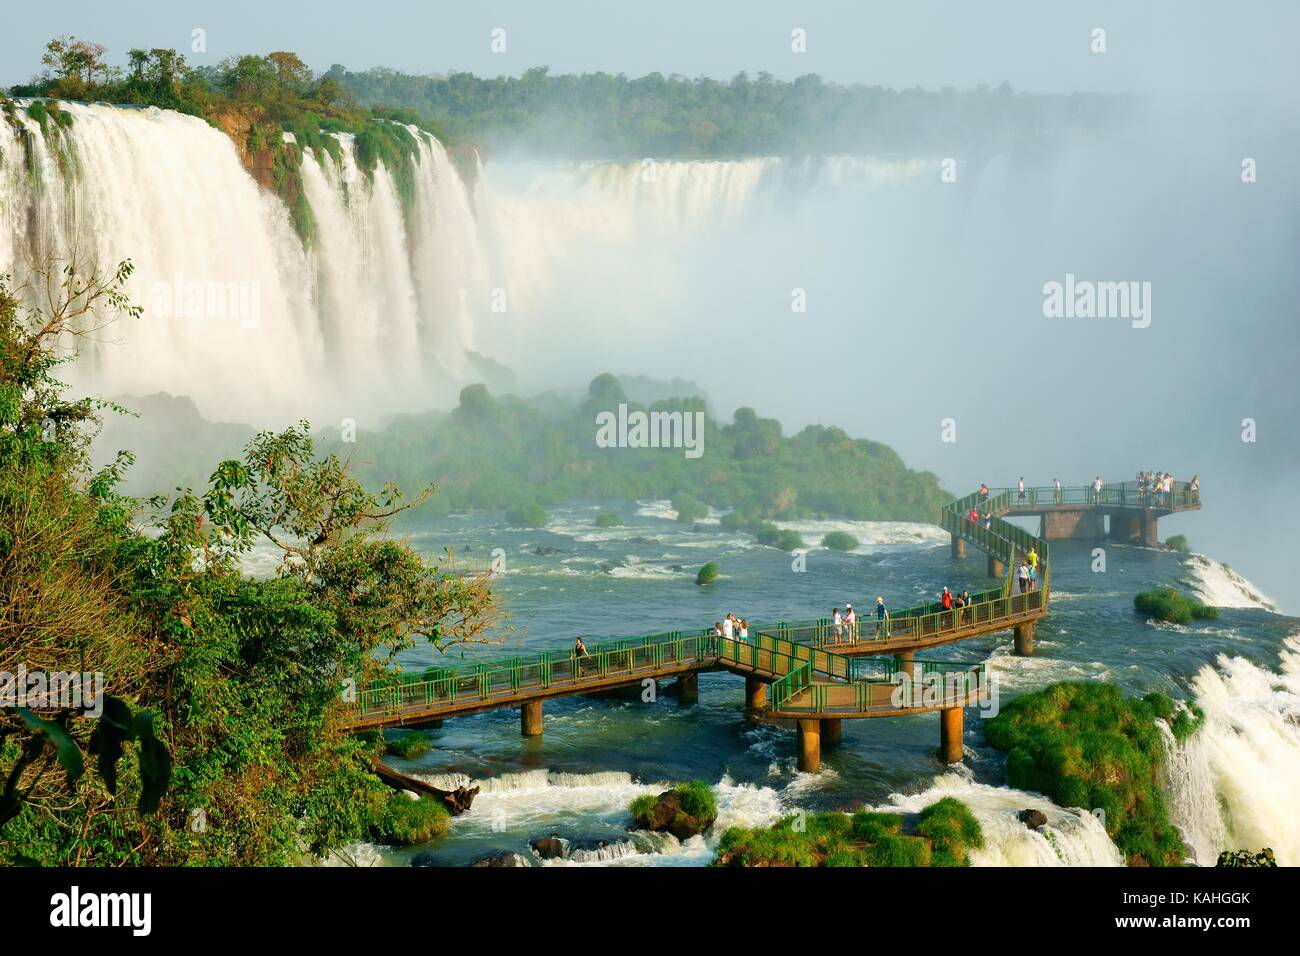 Les touristes sur une plate-forme d'observation, des chutes d'Iguazu, Foz do Iguaçu, parc national Photo Stock